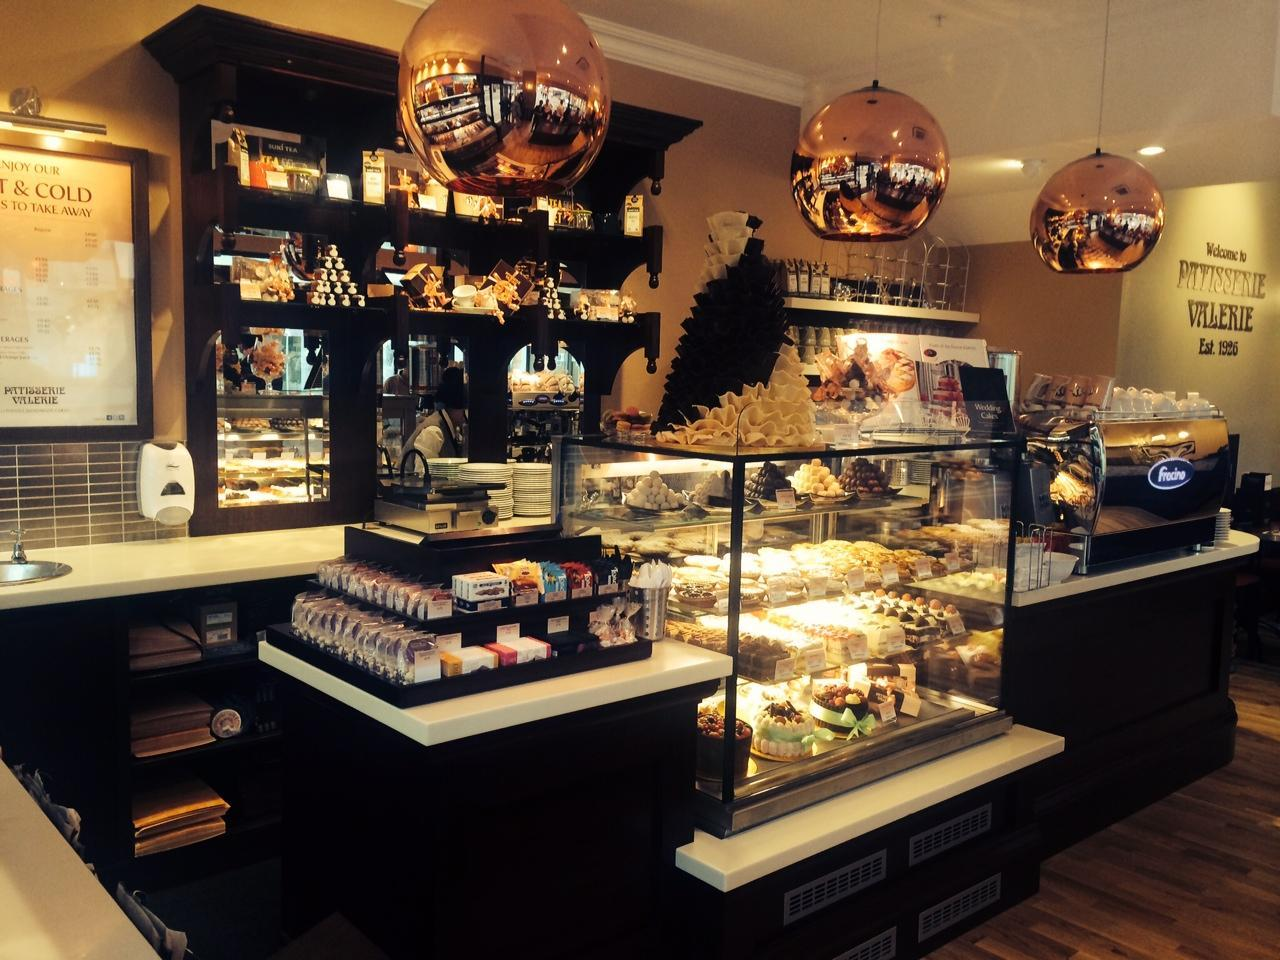 Patisserie Valerie - Cambridge Fitzroy St - Cambridge